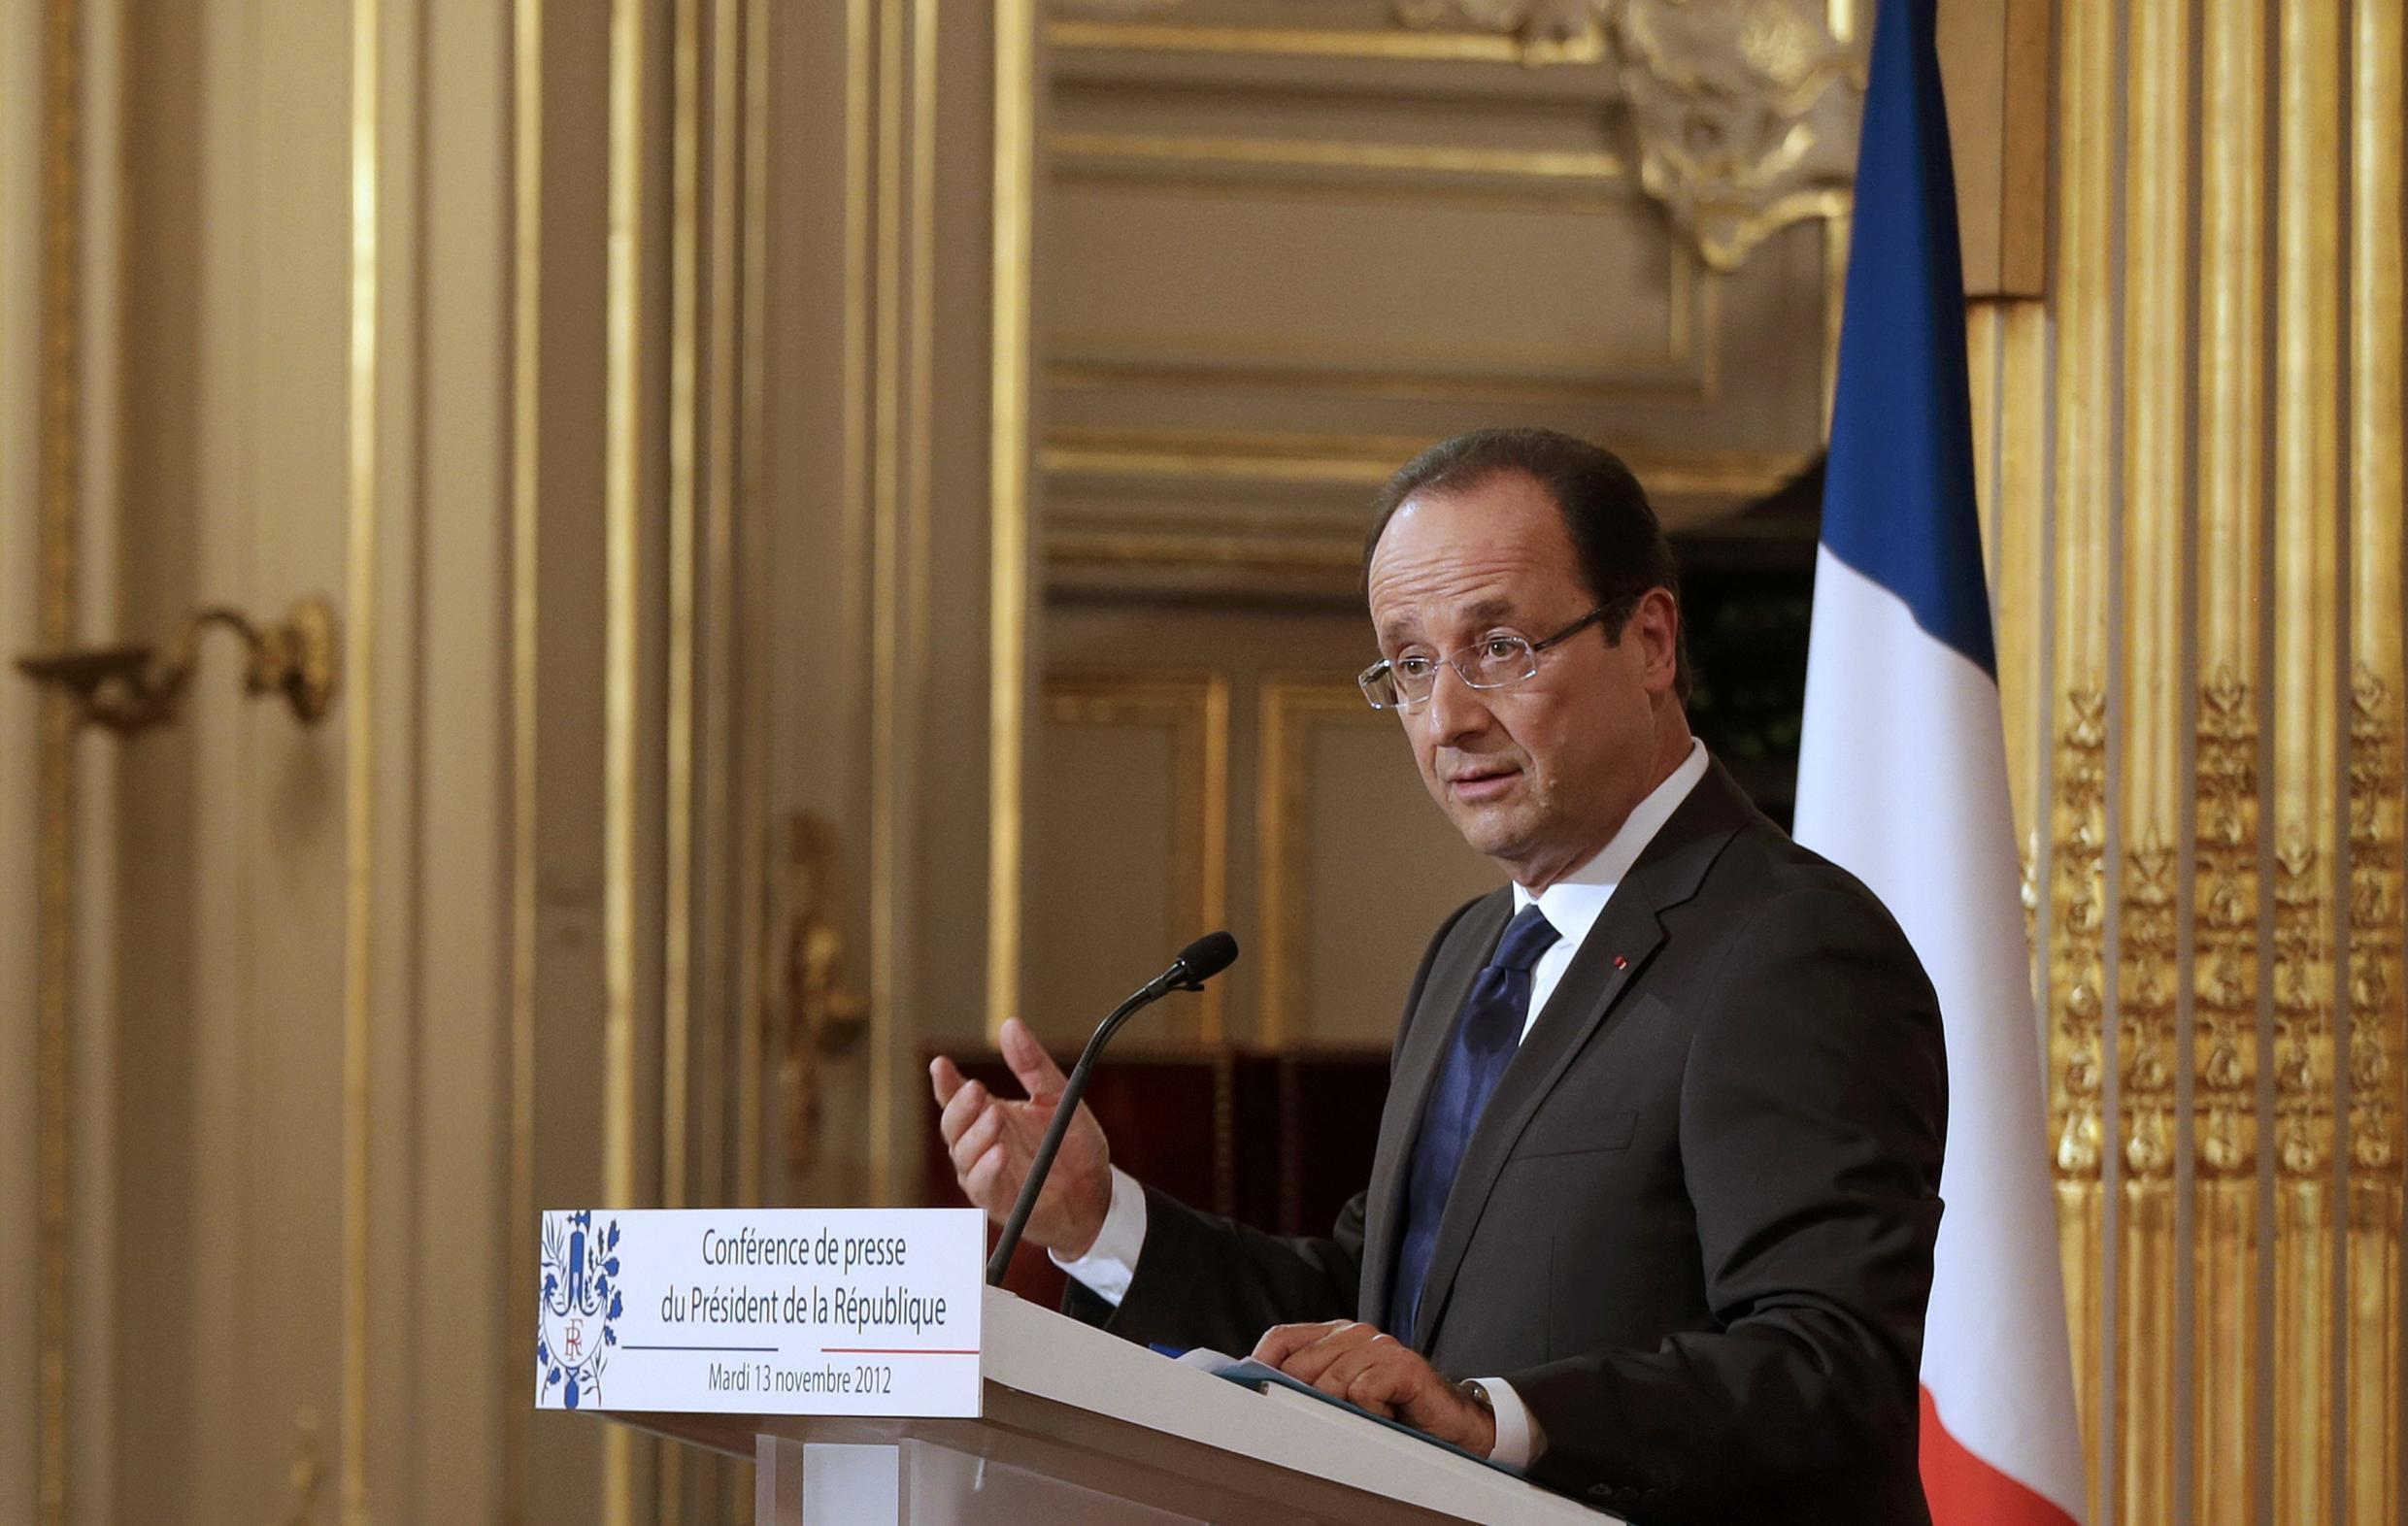 François Hollande at his conference at the Elysée presidential palace